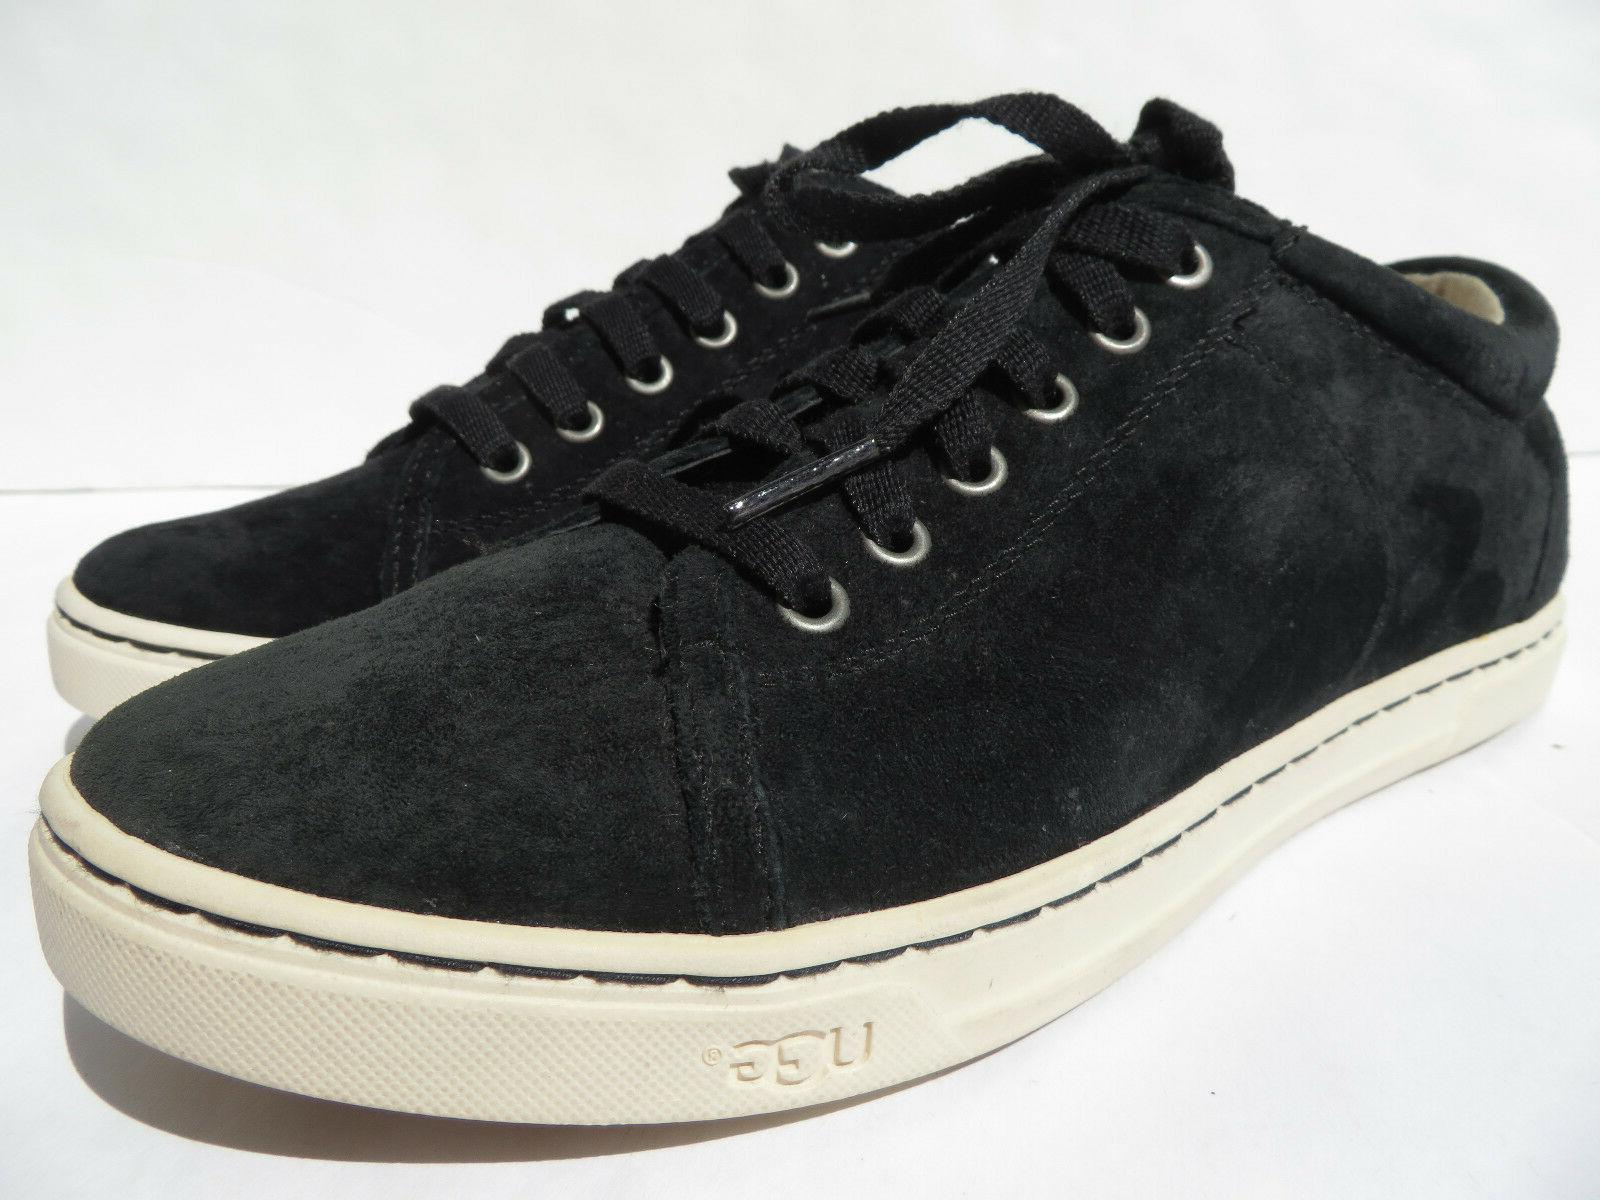 Suede Sneaker 6.5 10 Leather Black NEW